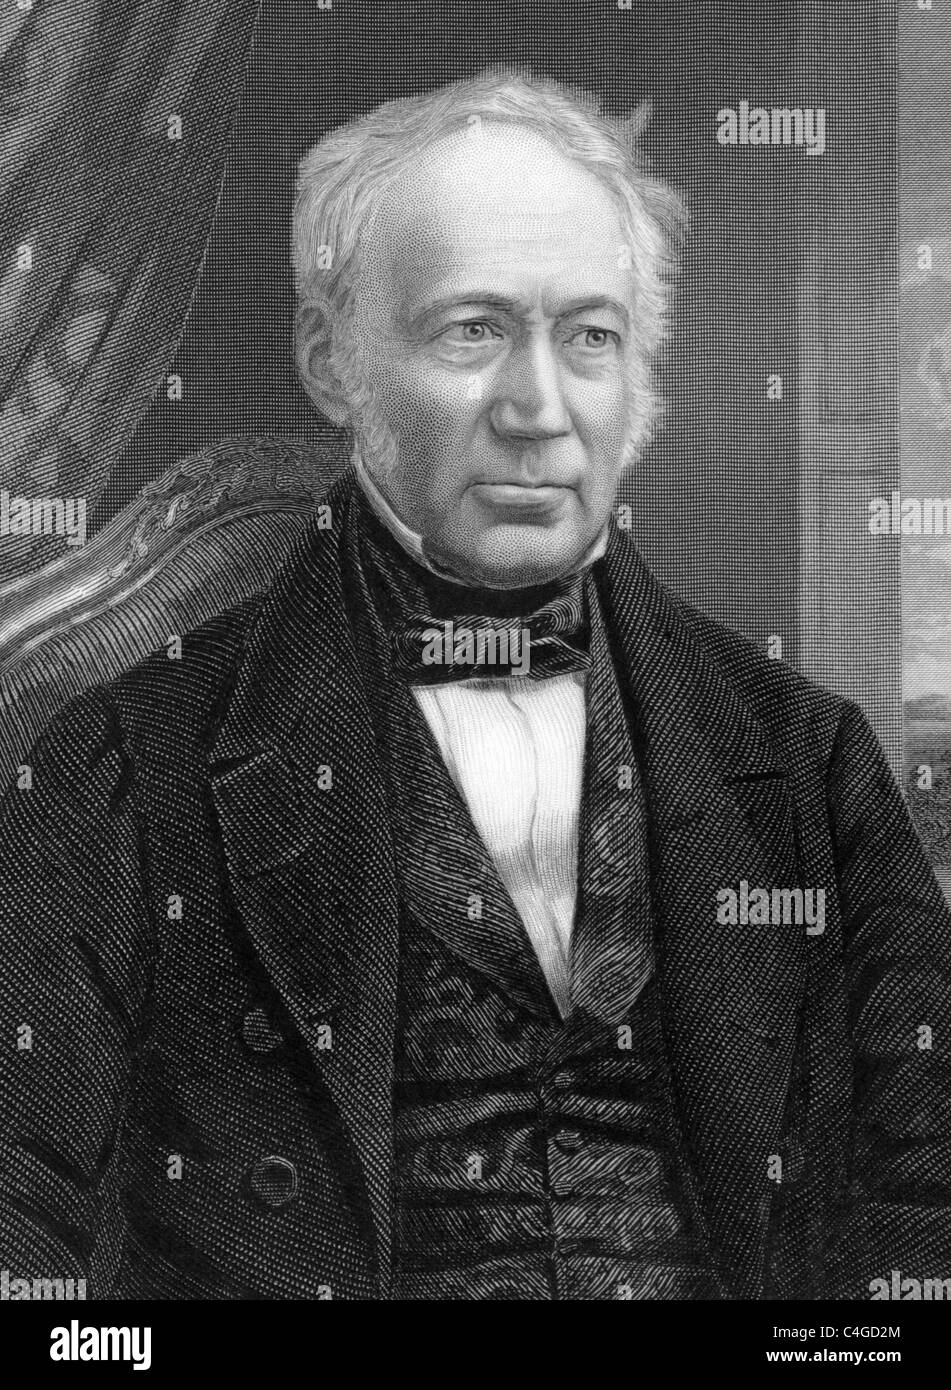 Andrew Ure (1778-1857) on engraving from 1800s. Scottish doctor, scholar and chemist. - Stock Image